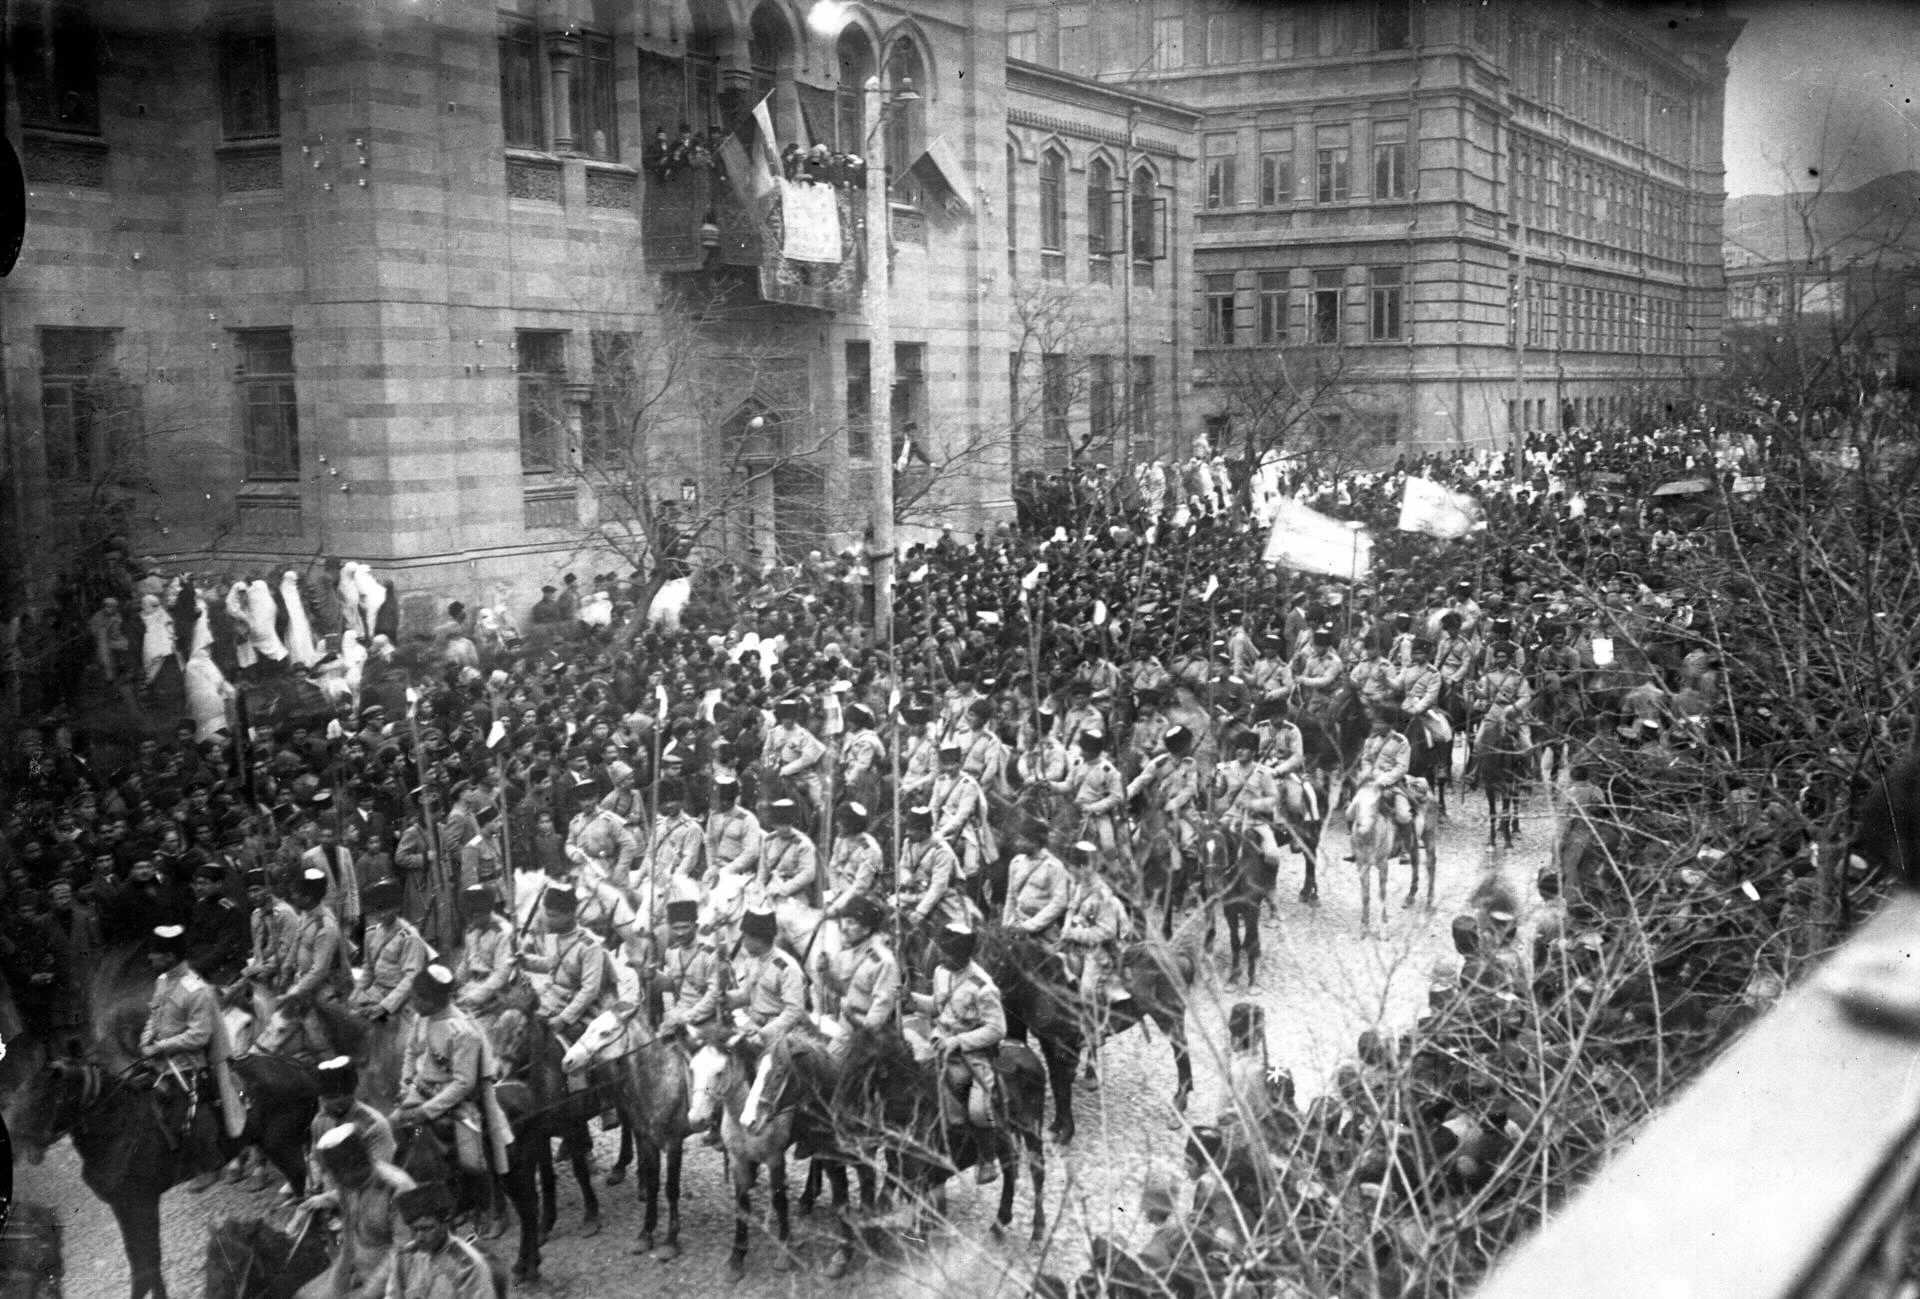 The Ottoman Islamic Army of the Caucasus enters Baku on 15 September, 1918